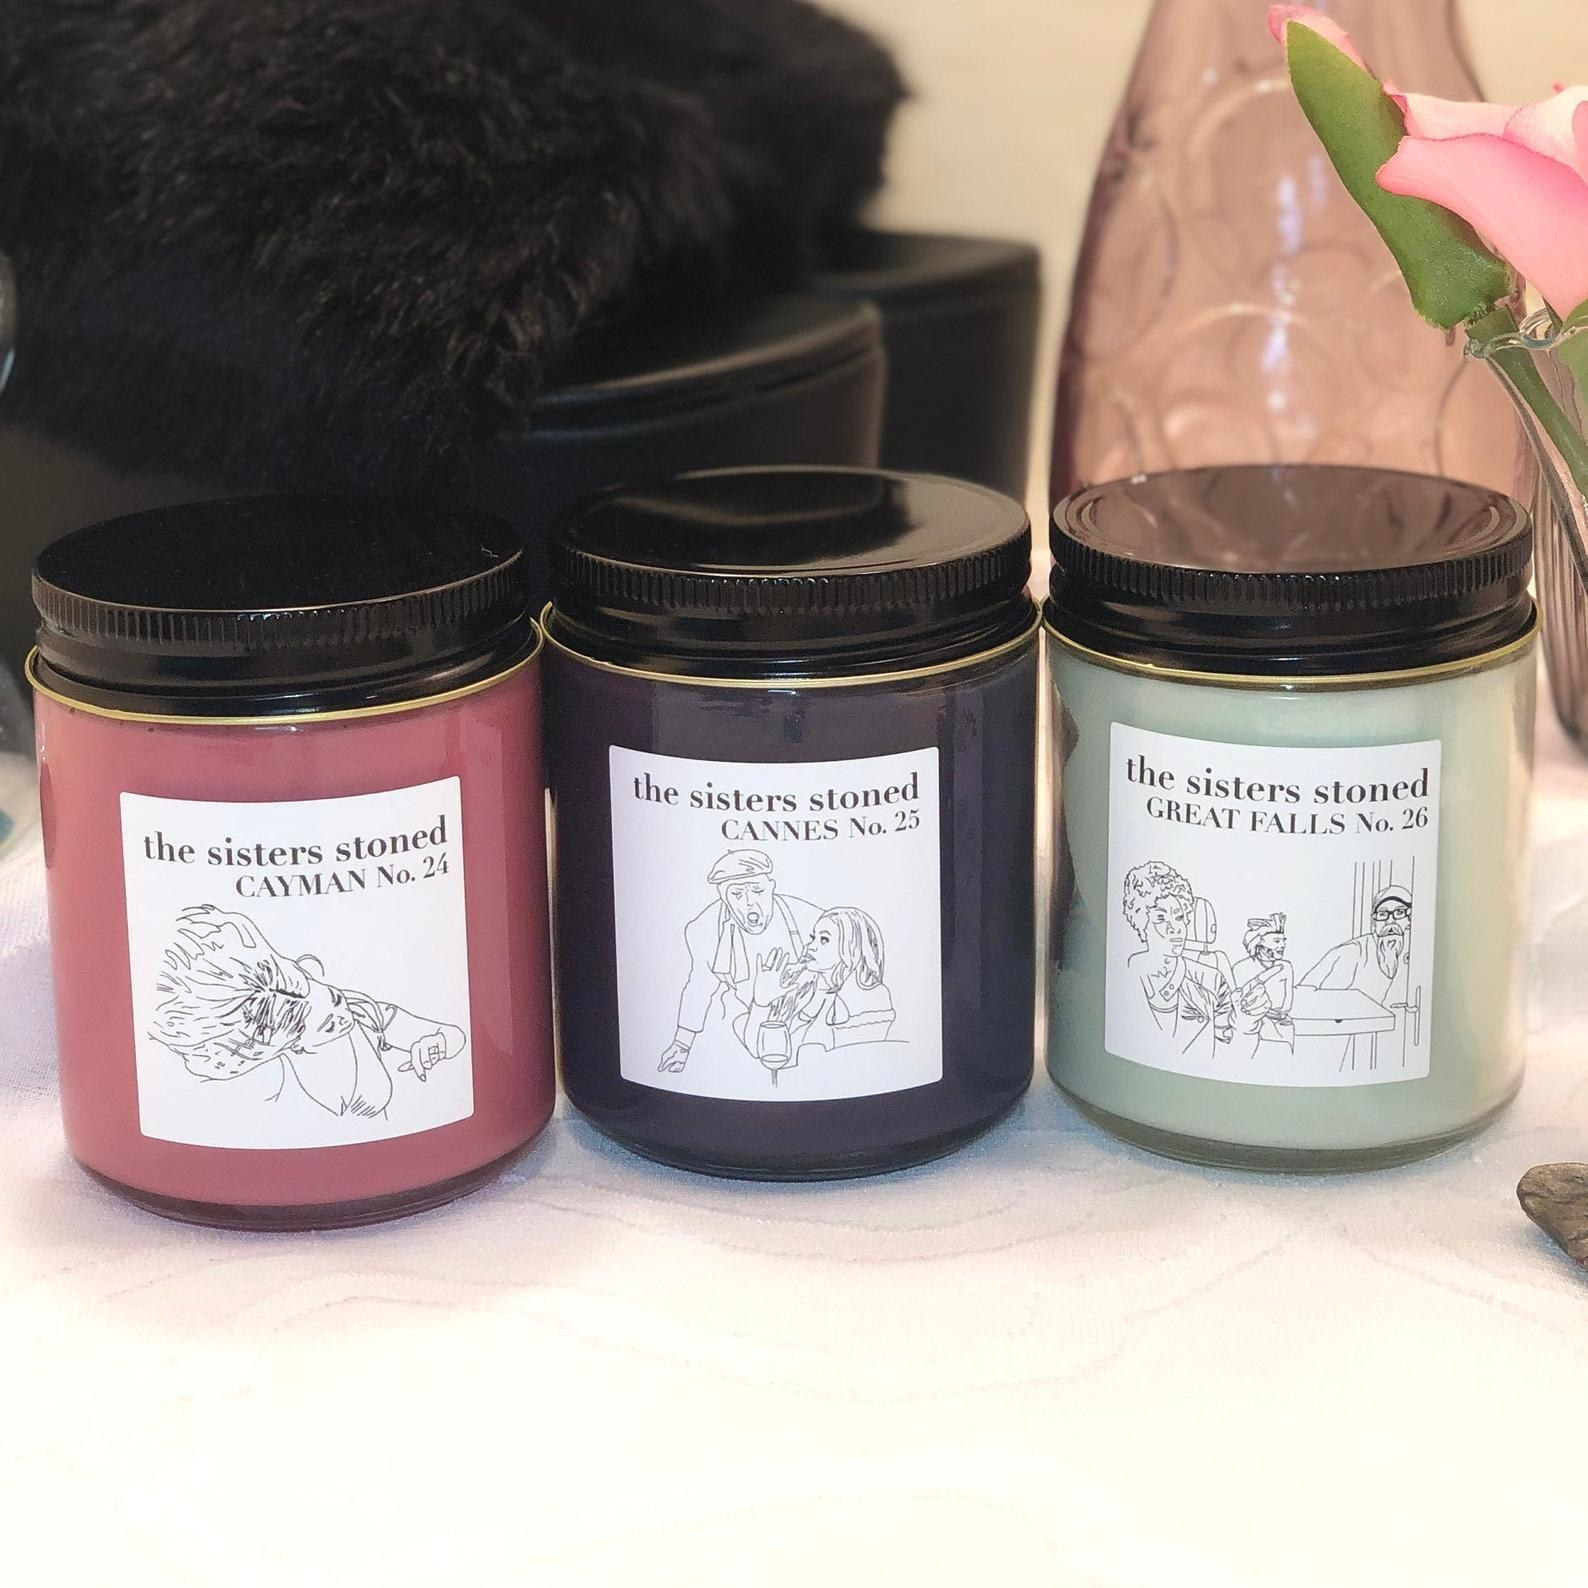 three candles with illustrations of real housewives of potomac moments on then